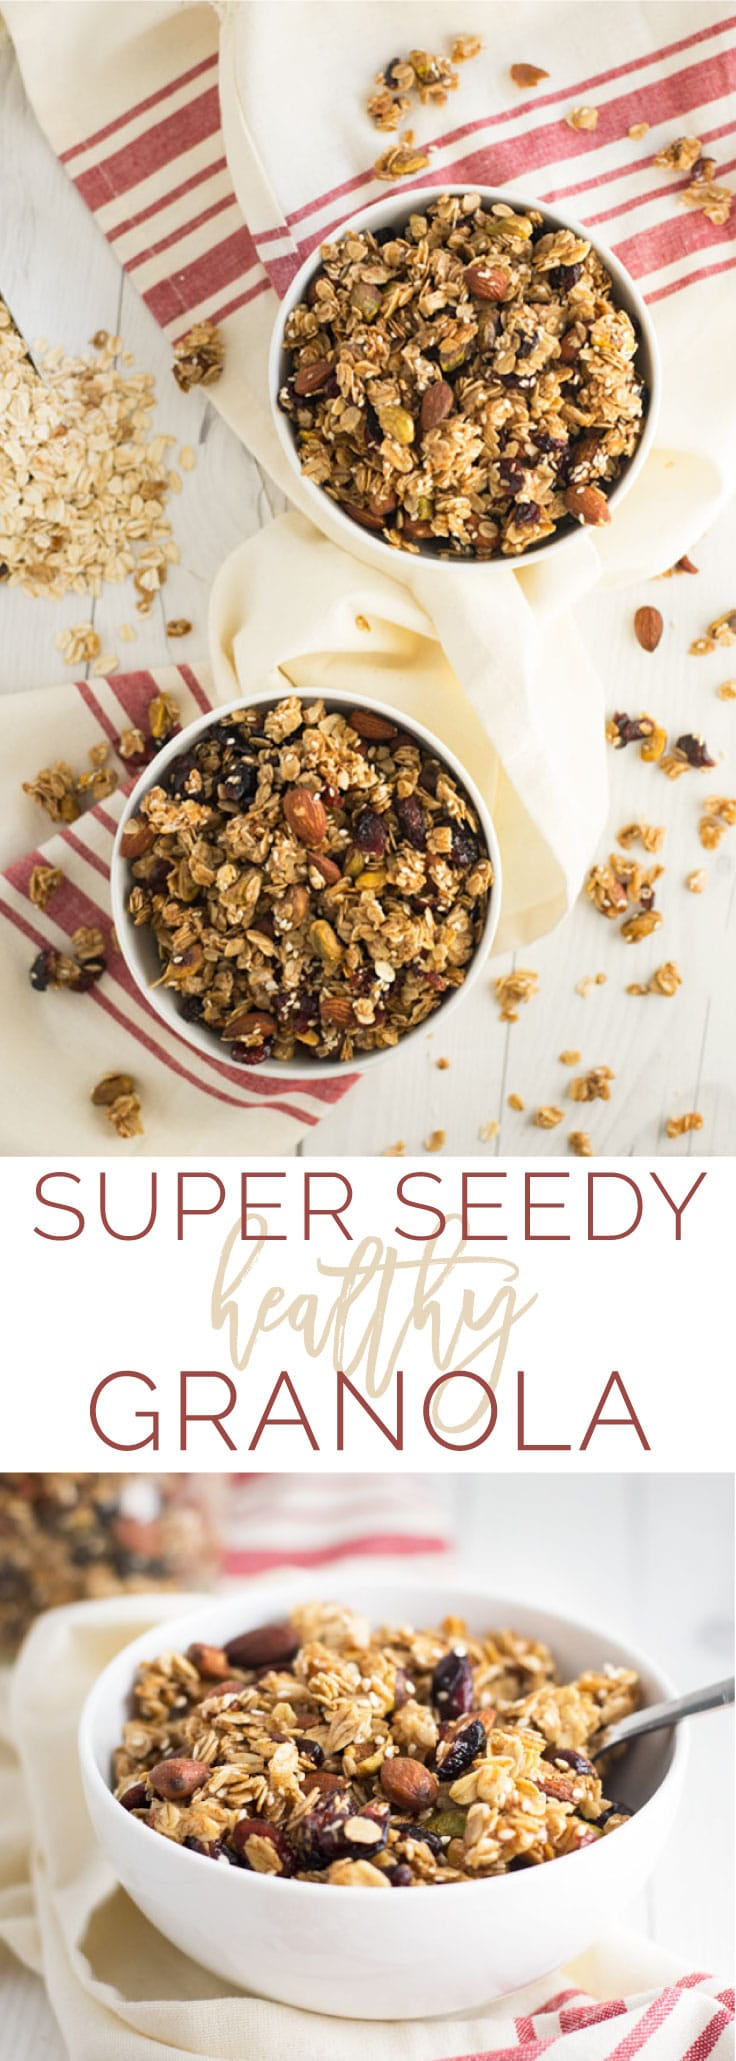 Super Seedy Healthy Granola -- This homemade granola recipe is naturally vegan, gluten-free, and only requires simple REAL ingredients. It\'s chunky, crunchy, nutty, and sweet all bundled into little clusters. #granola #homemade #healthy #vegan #cleaneating #recipe | mindfulavocado